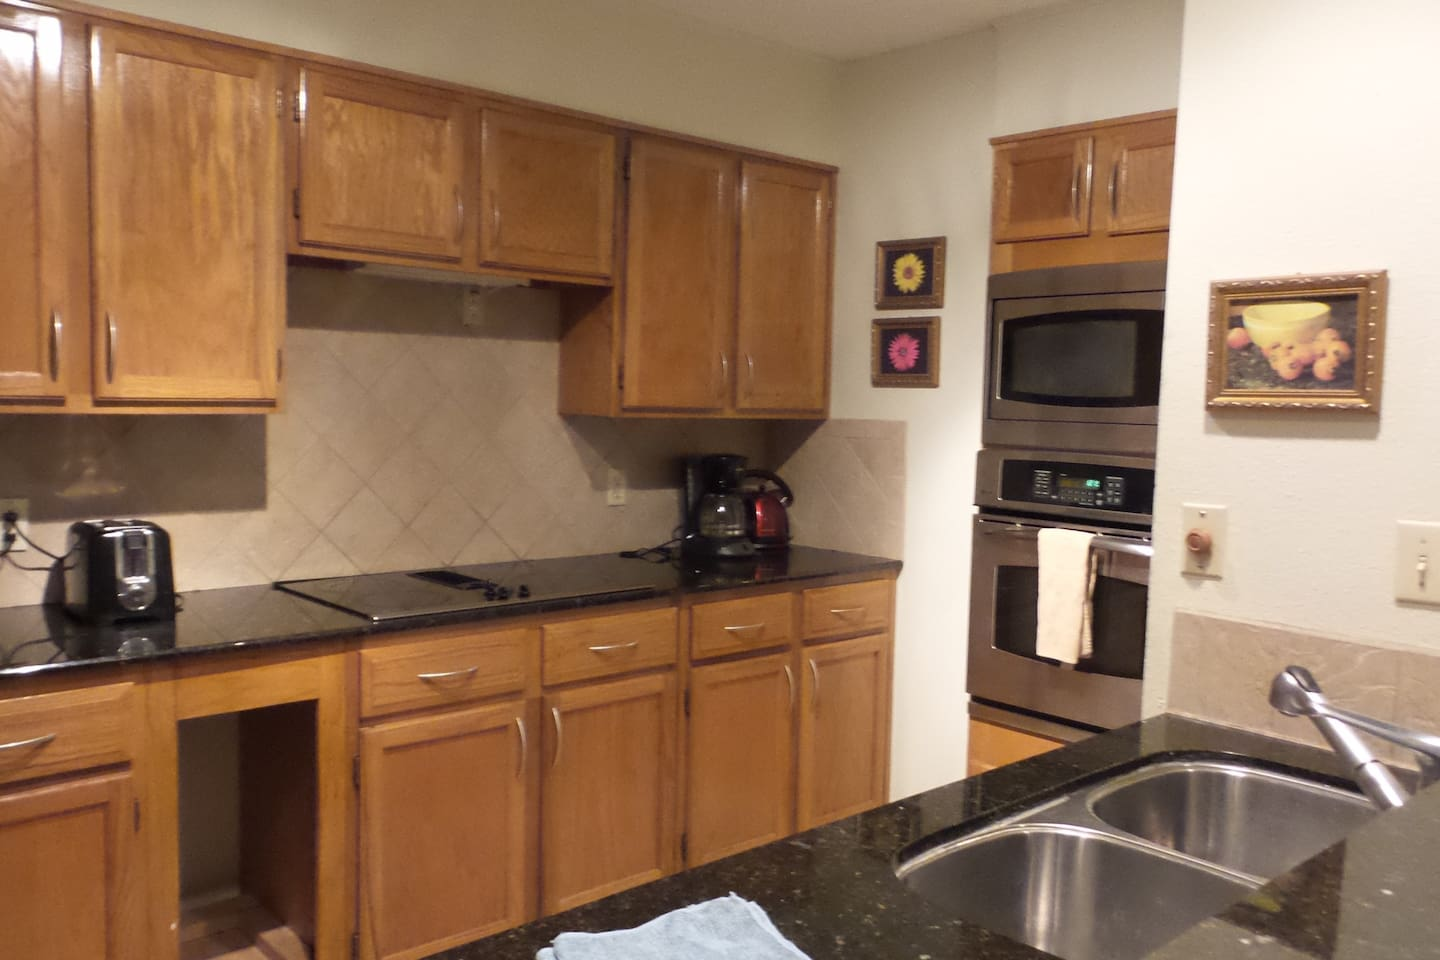 Fully furnished shared kitchen